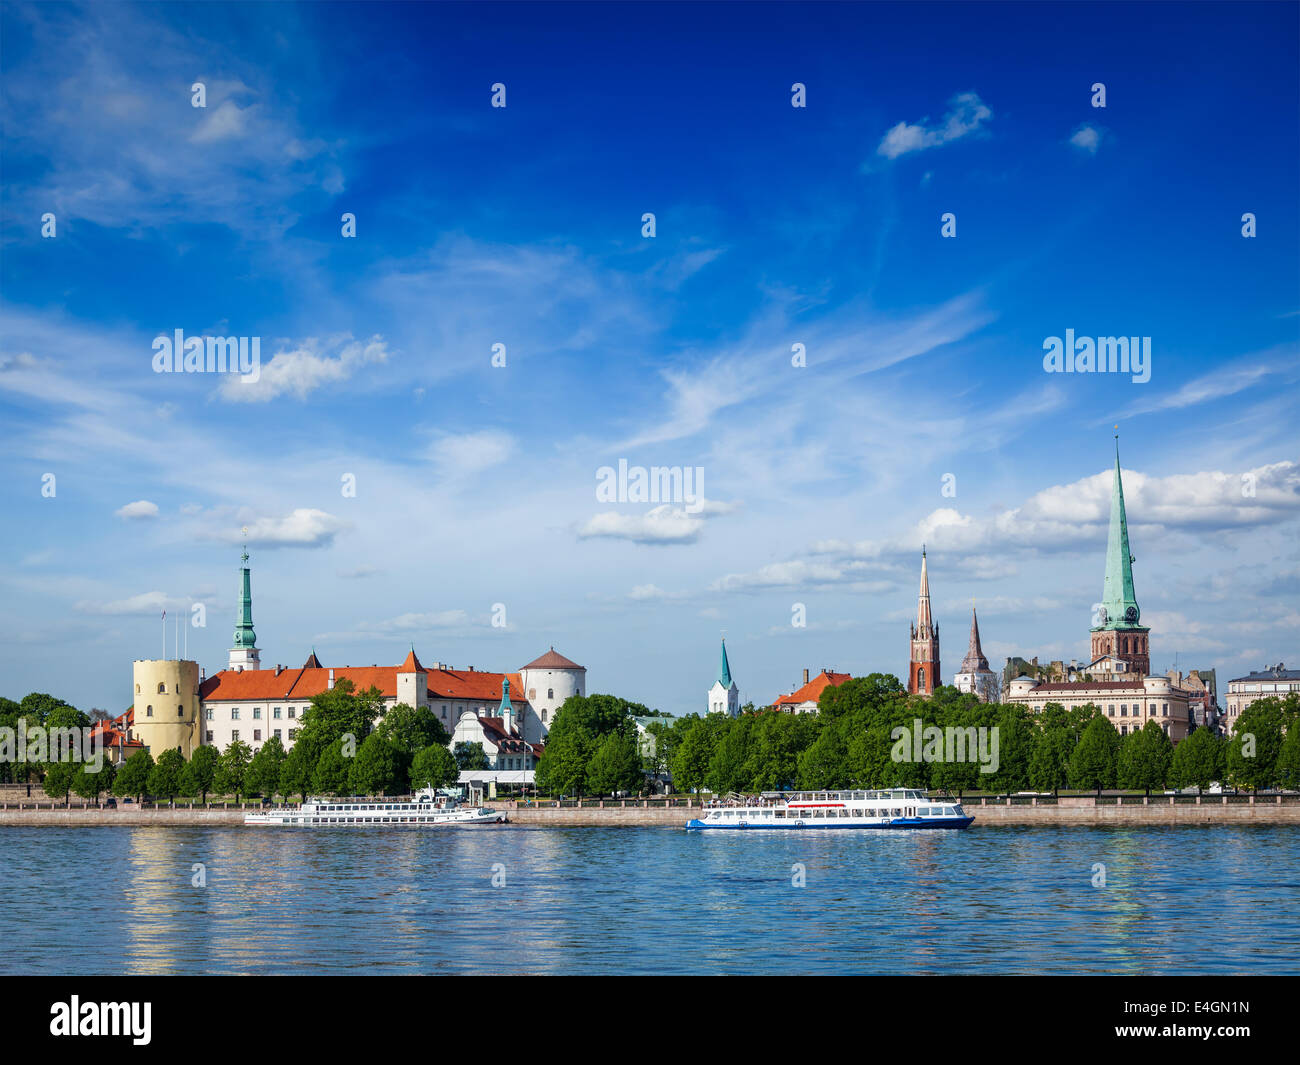 View of Riga over Daugava river: Riga Castle, St. James's Cathedral, St. Peter's Church. Riga, Latvia - Stock Image